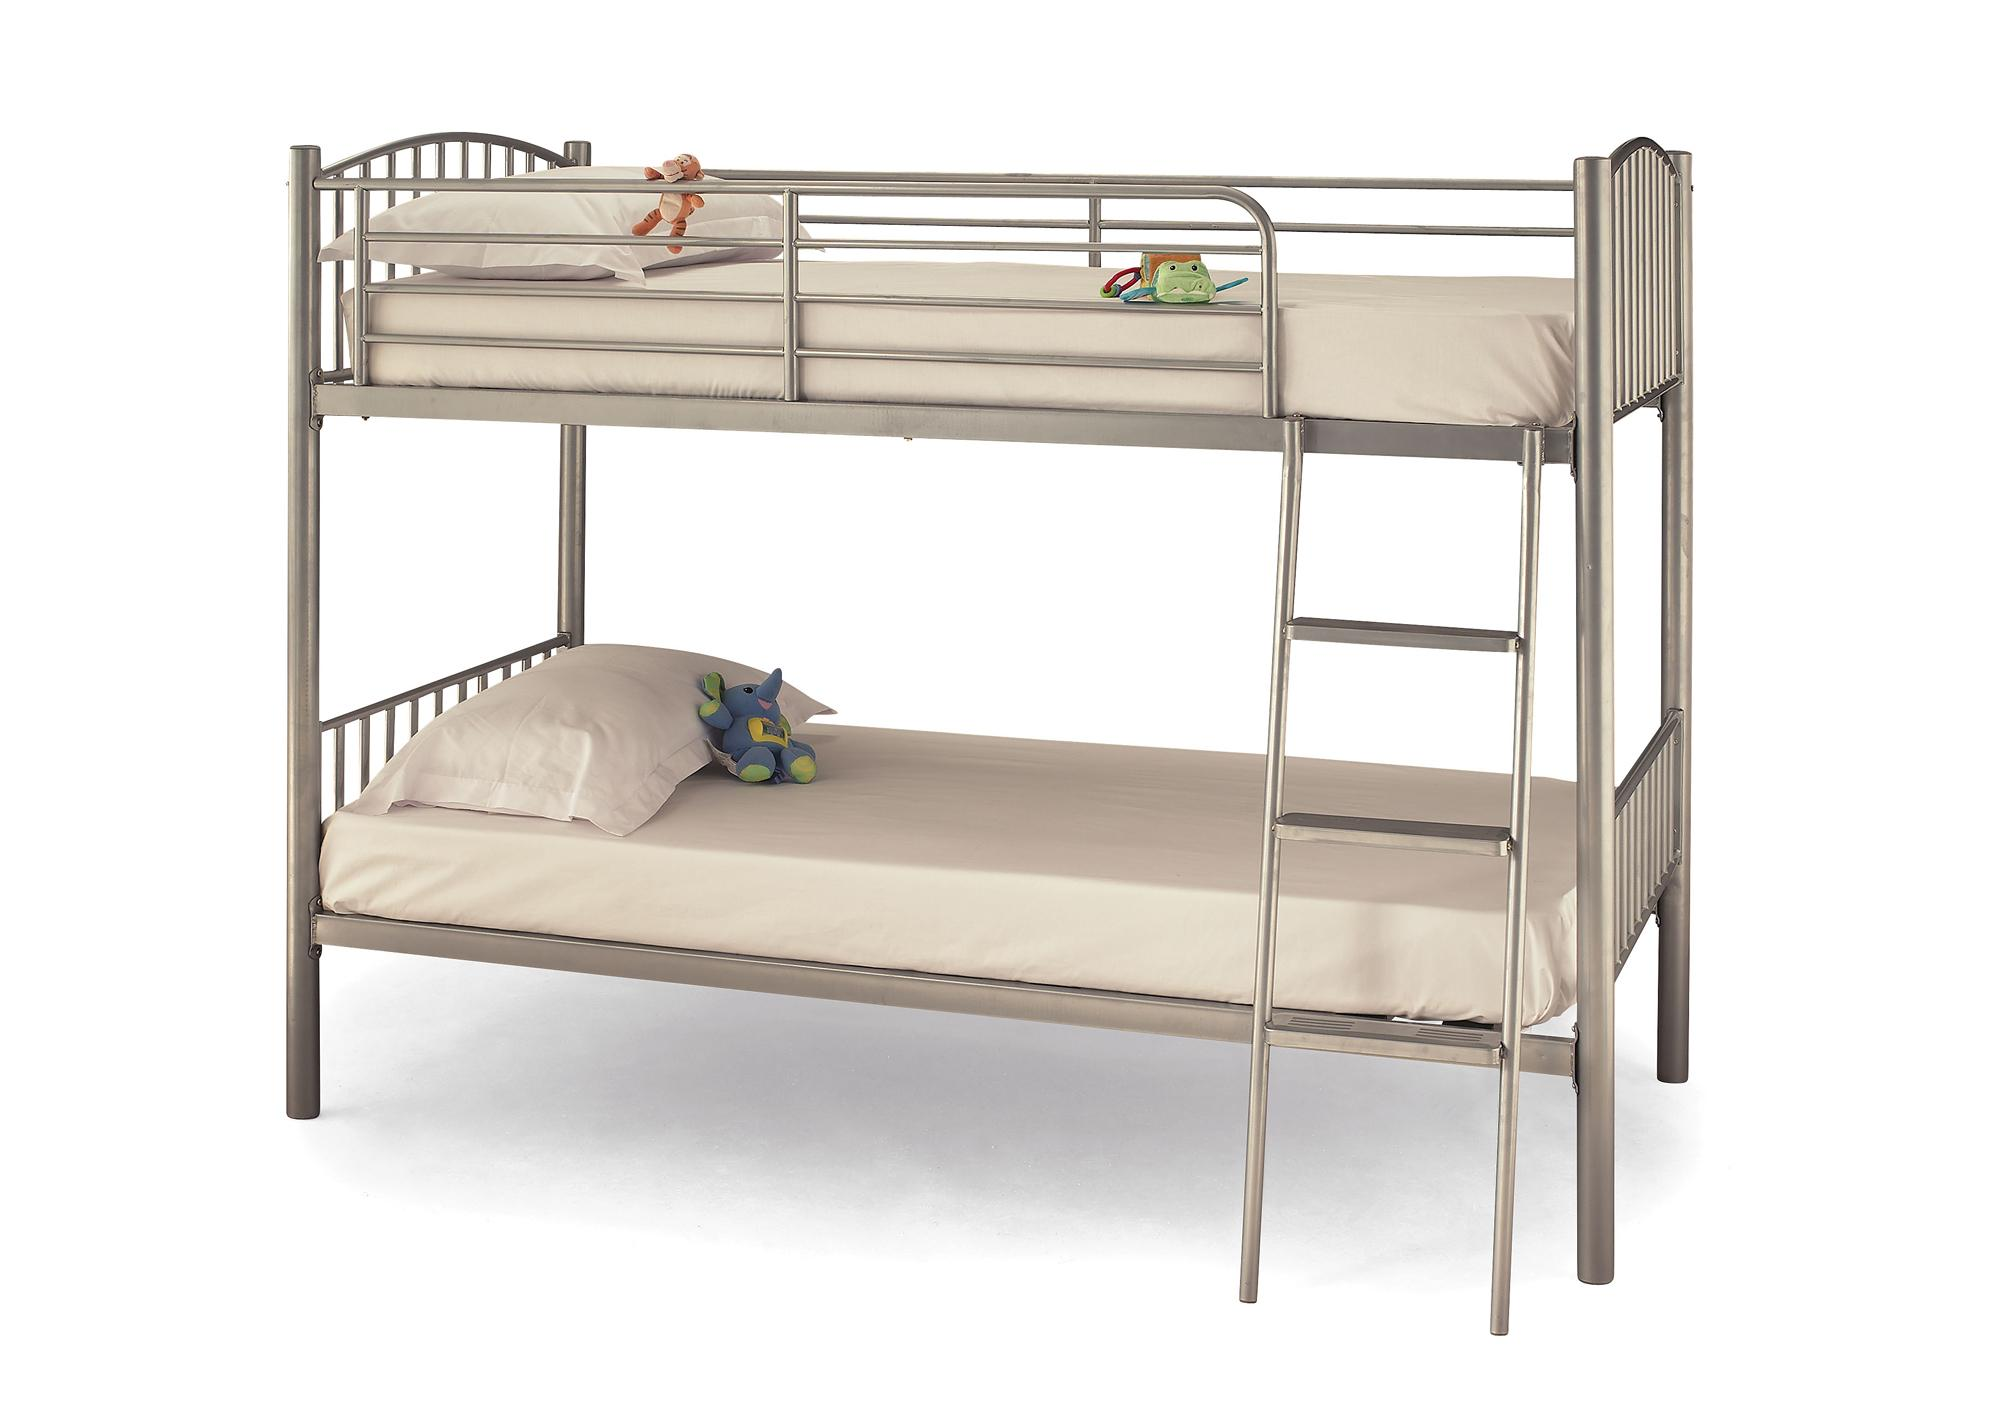 Buy cheap Twin bed frame pare Beds prices for best UK